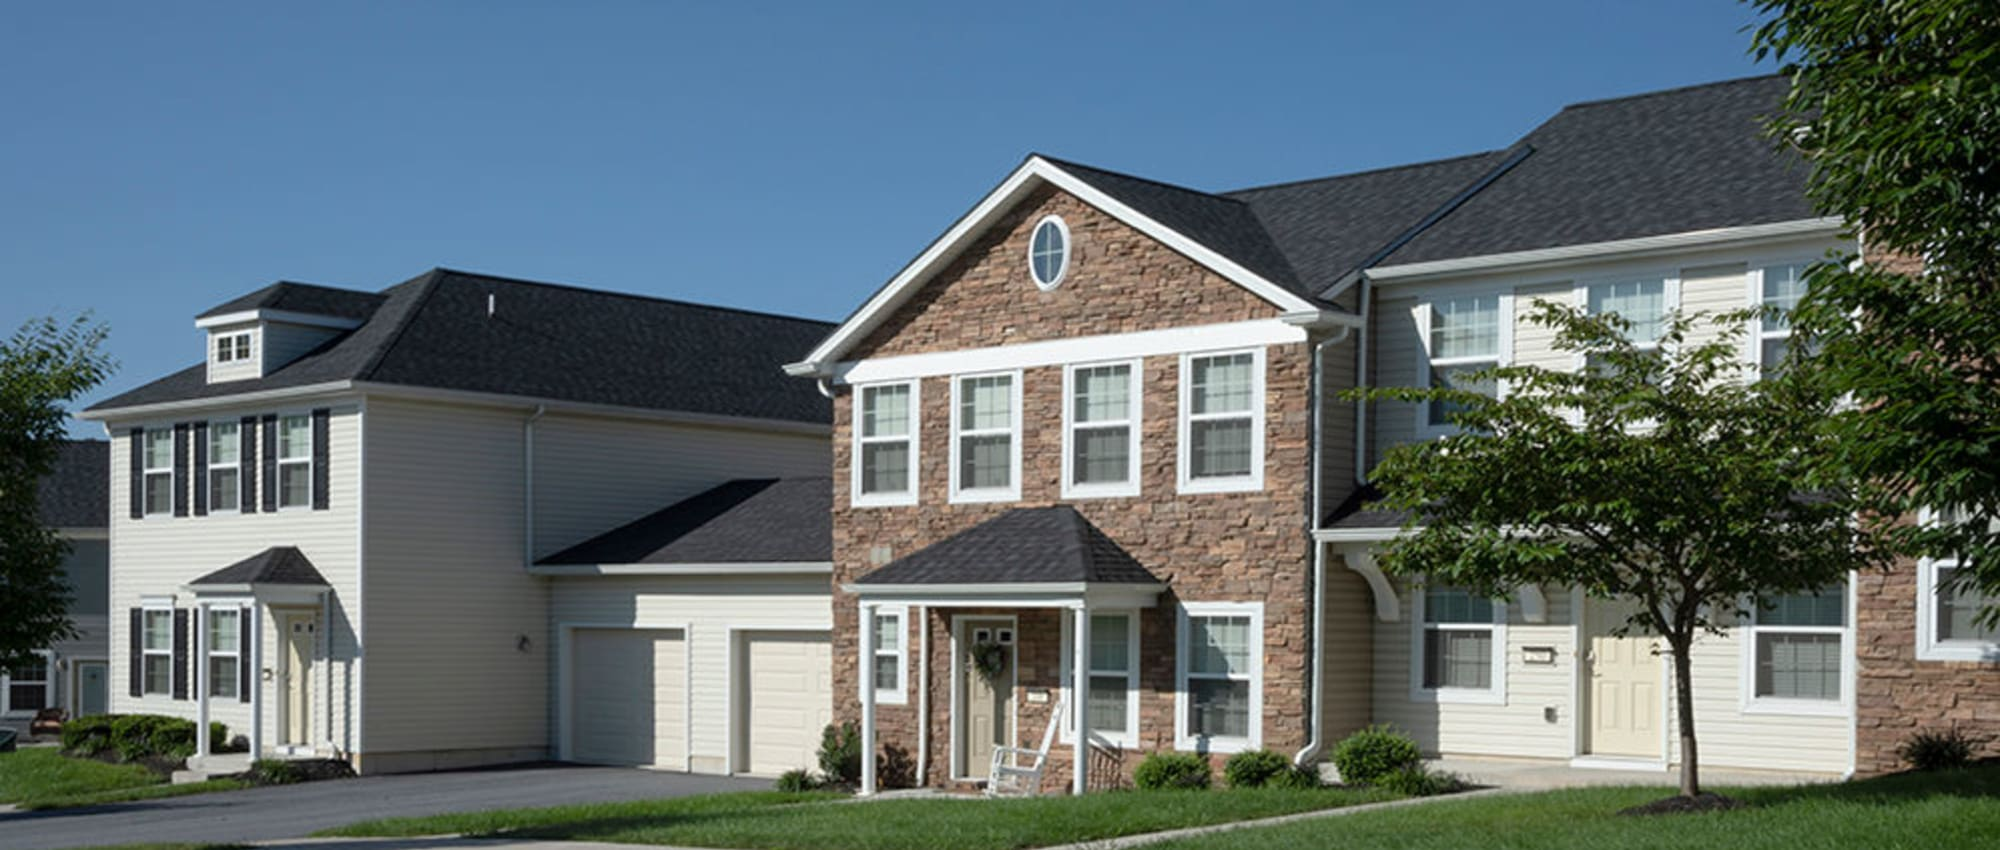 Apartments at The Village of Laurel Ridge & The Encore Apartments & Townhomes in Harrisburg, Pennsylvania